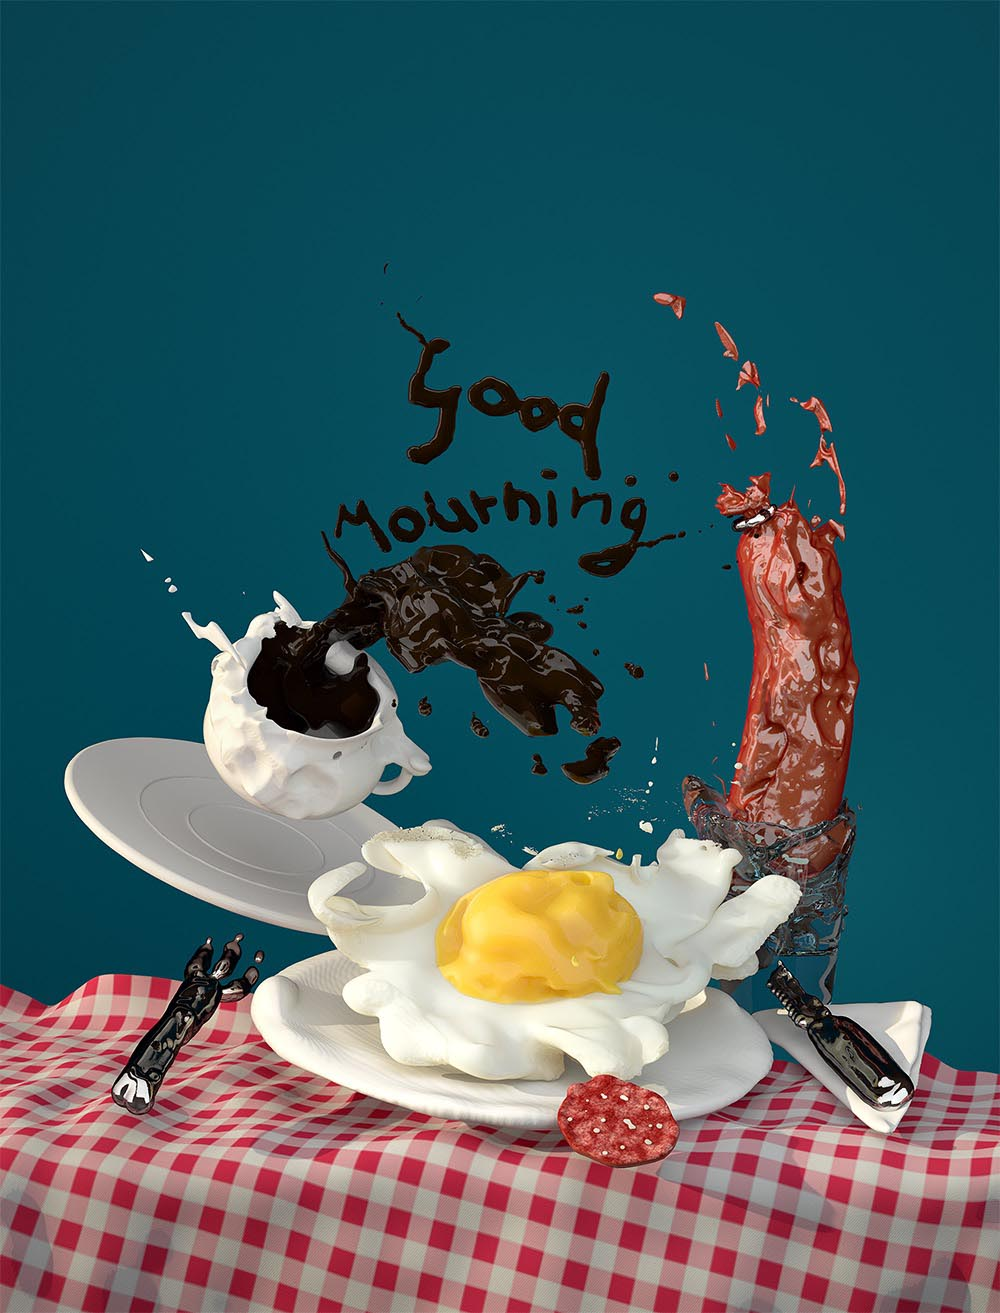 breakfast egg coffee table sausage fork knife table mouvement